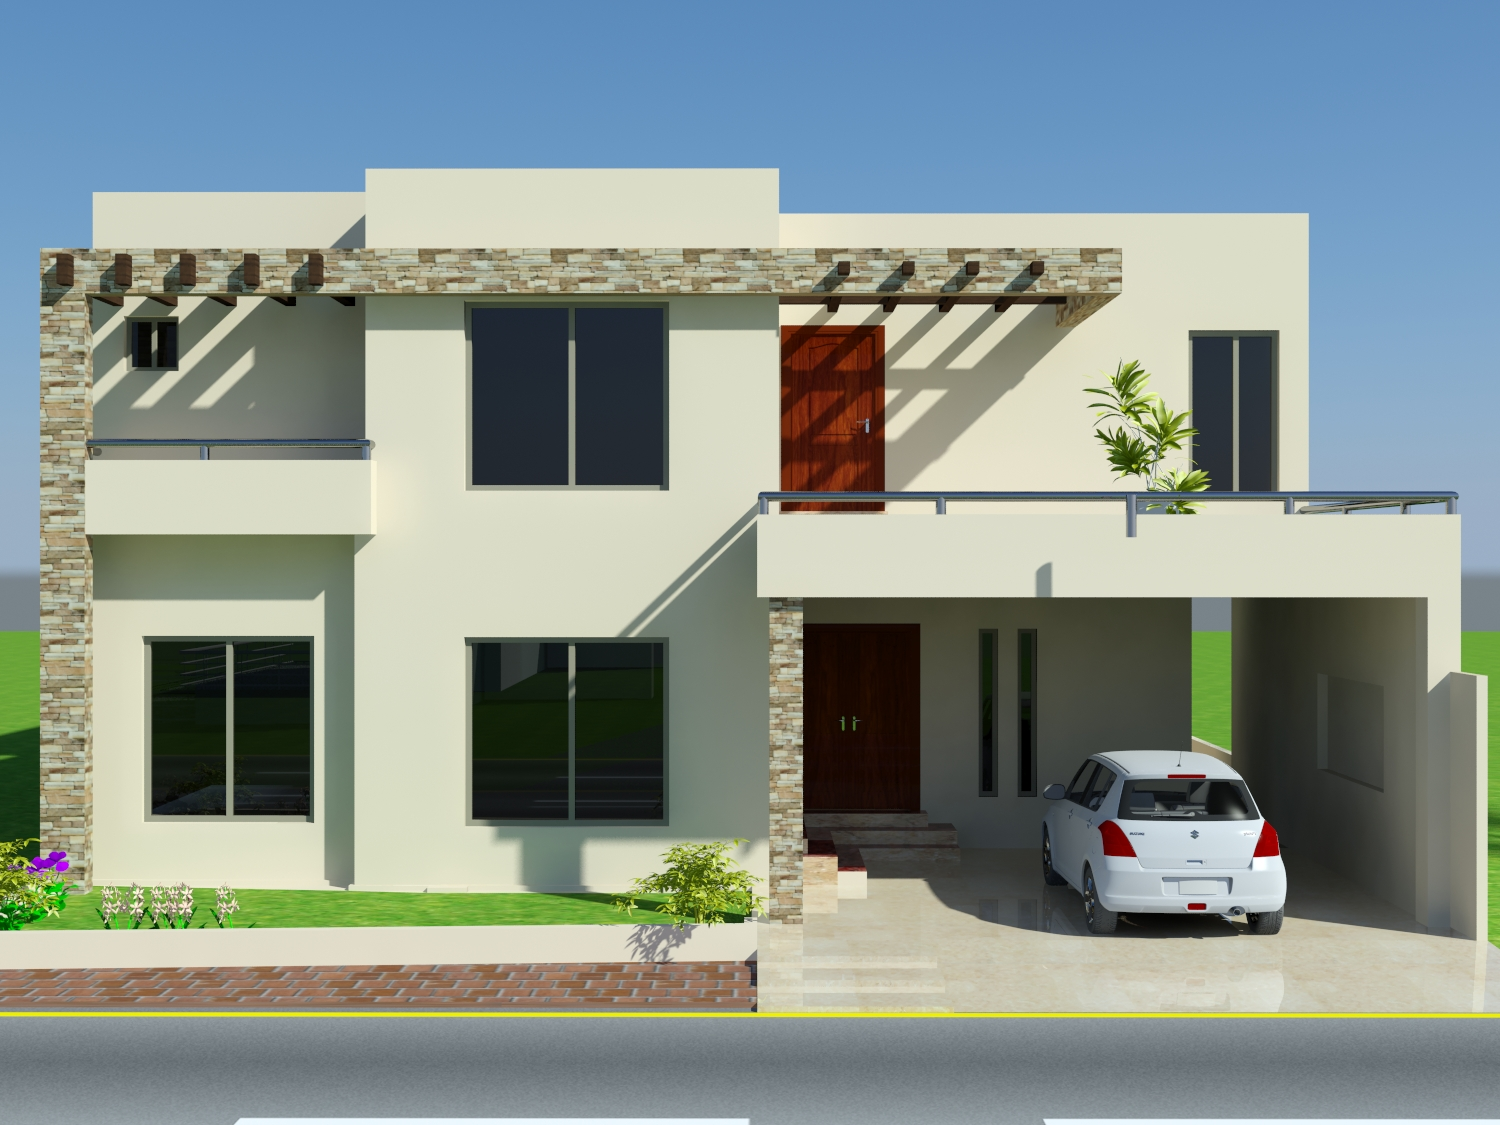 3d front 10 marla house design mian wali pakistan - D home design front elevation ...